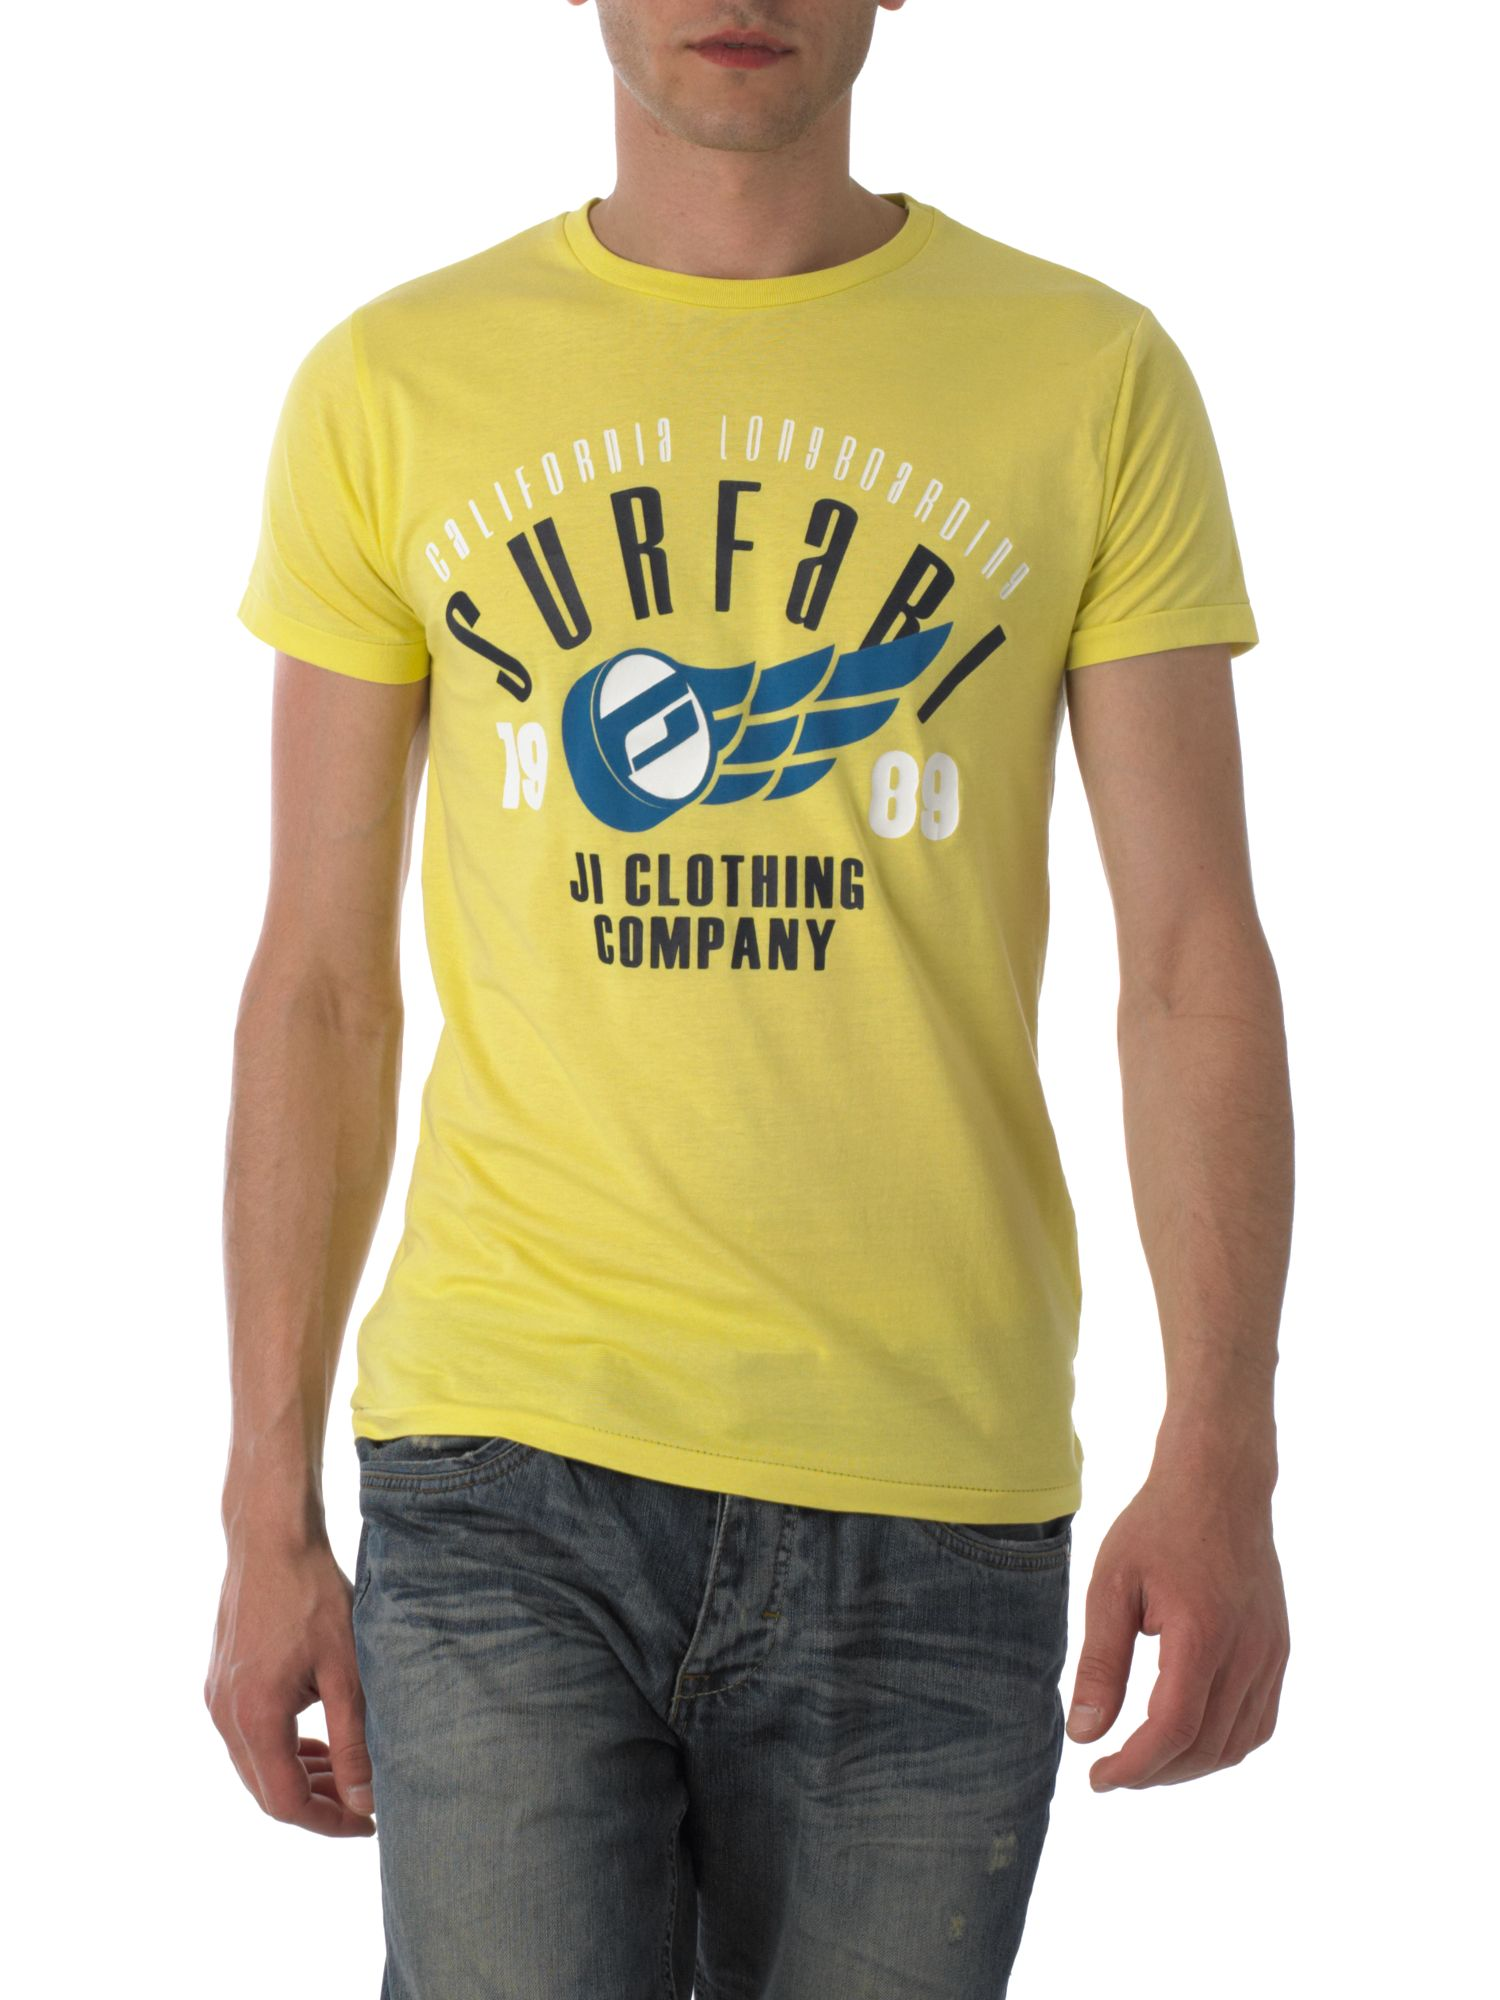 Jack & Jones Summer supply T-shirt product image